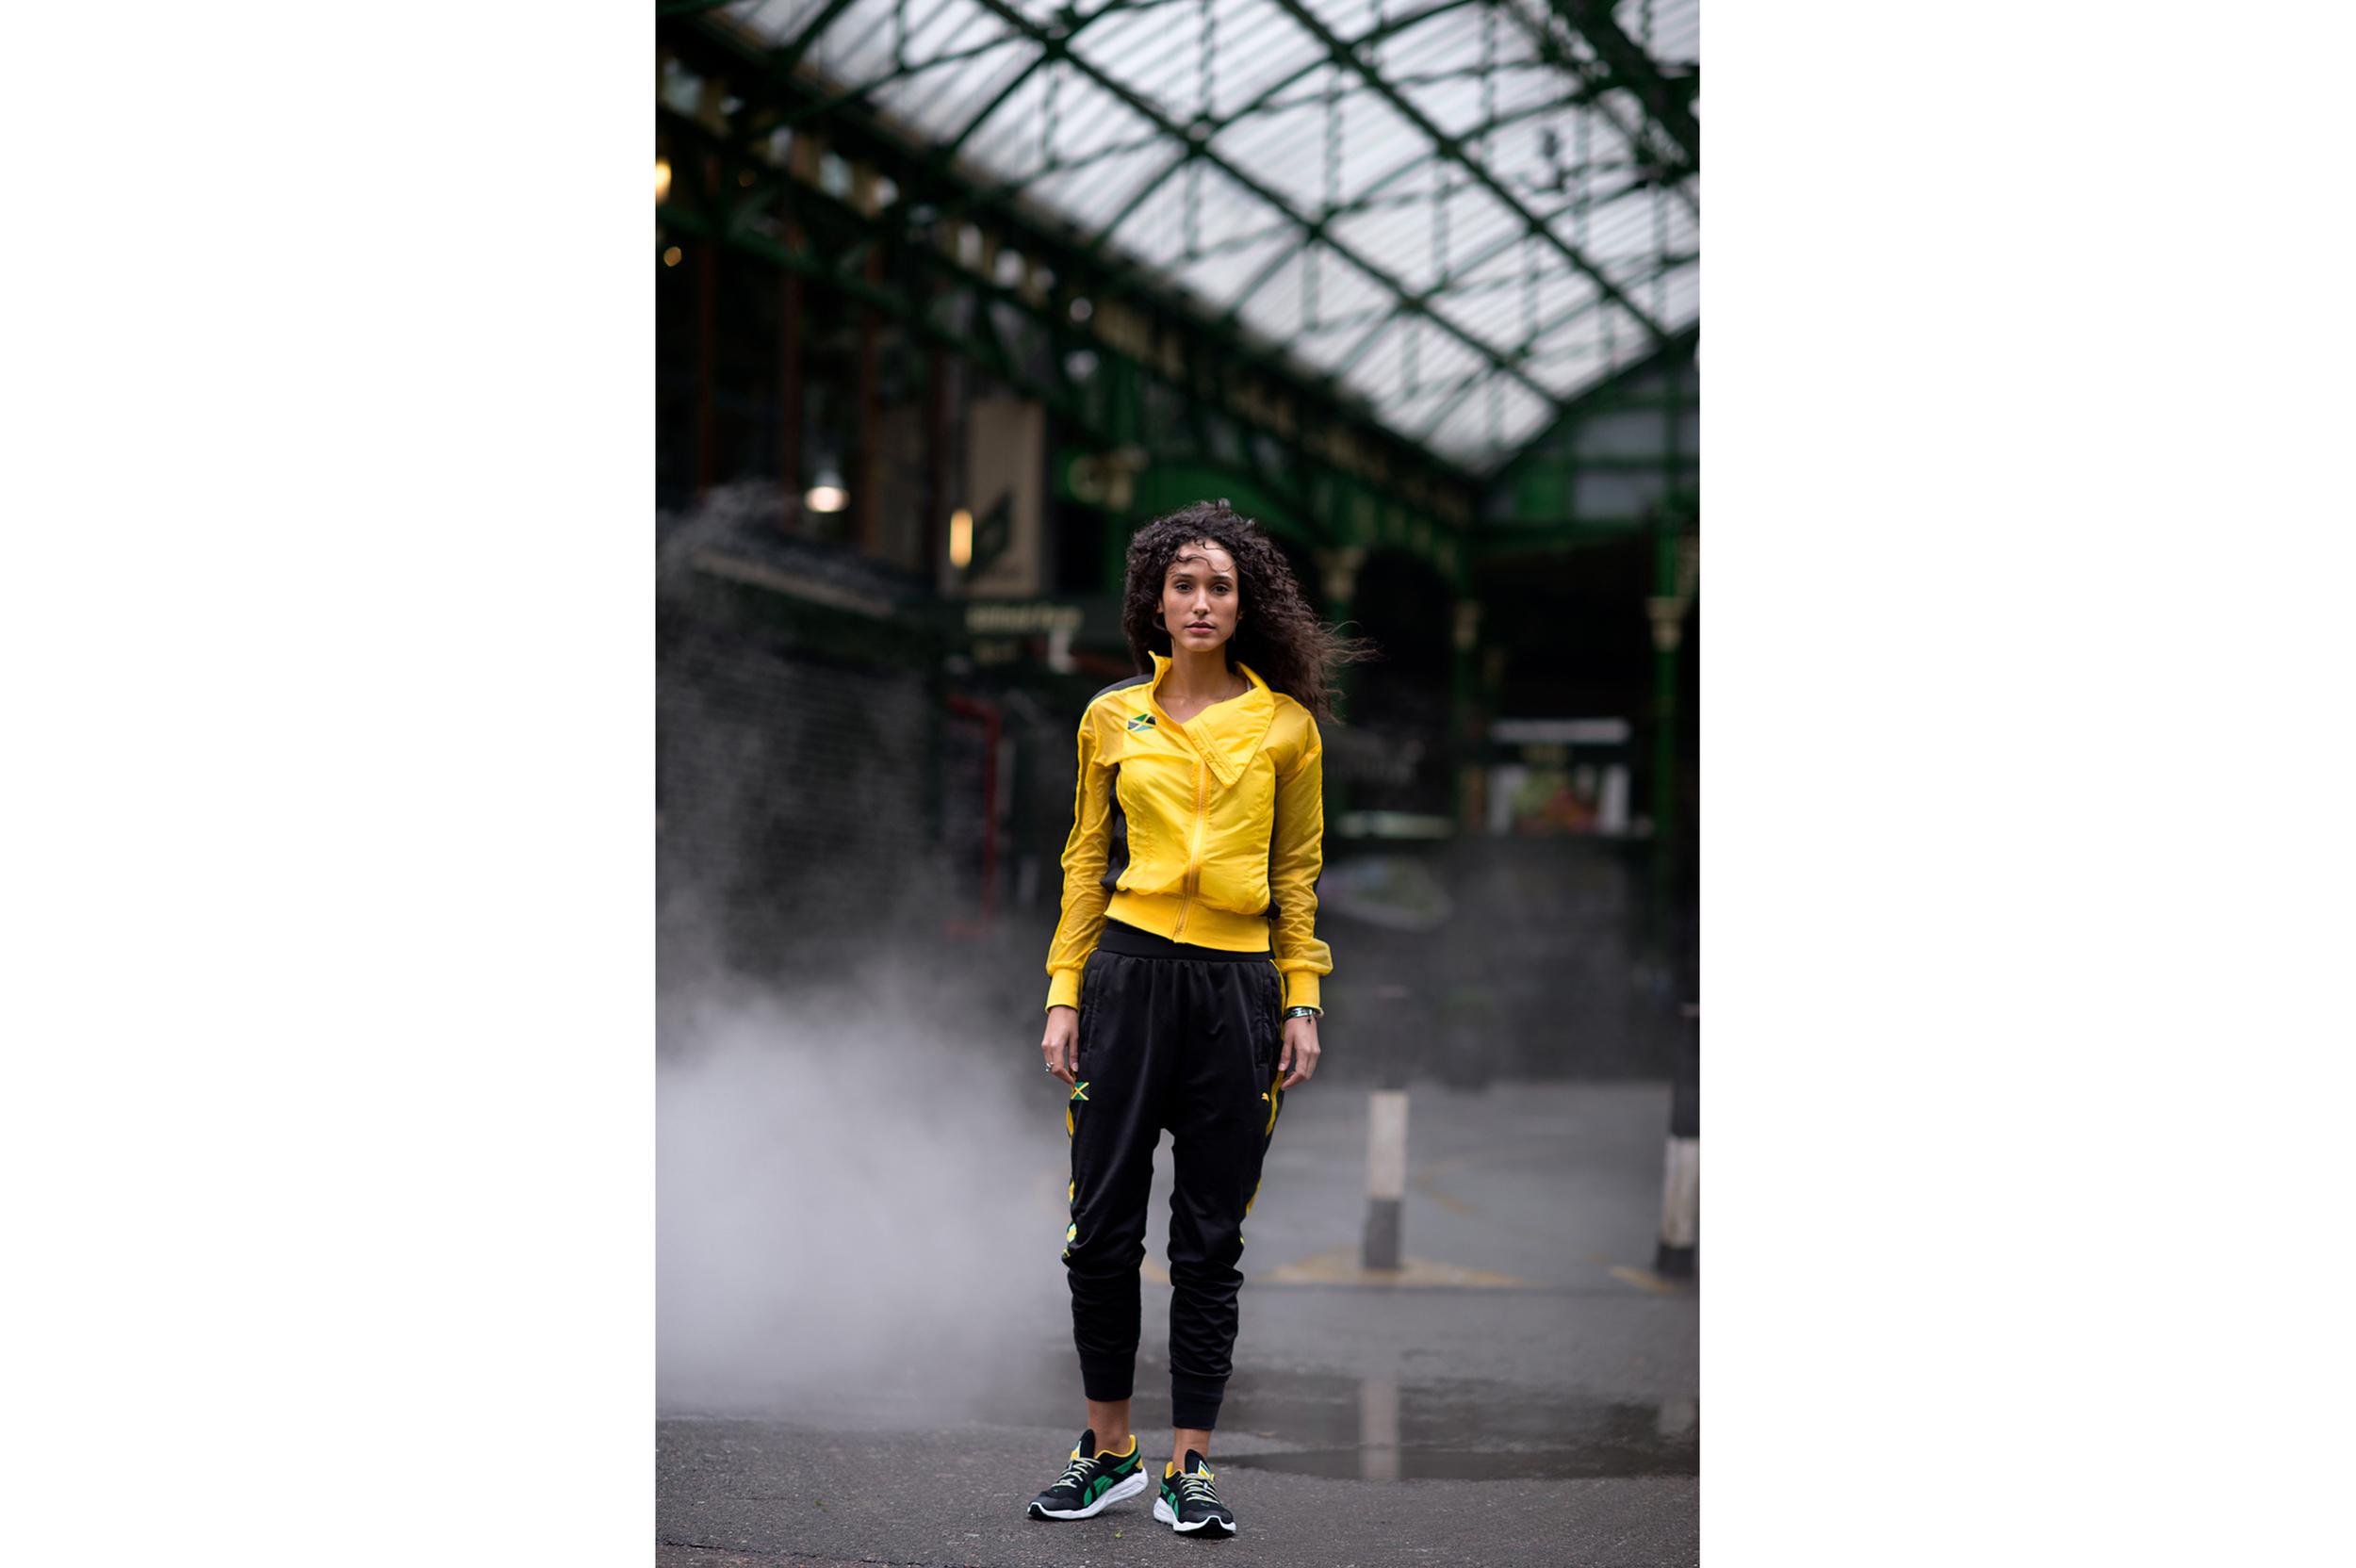 Syanne, photographed for Puma, London, 2015